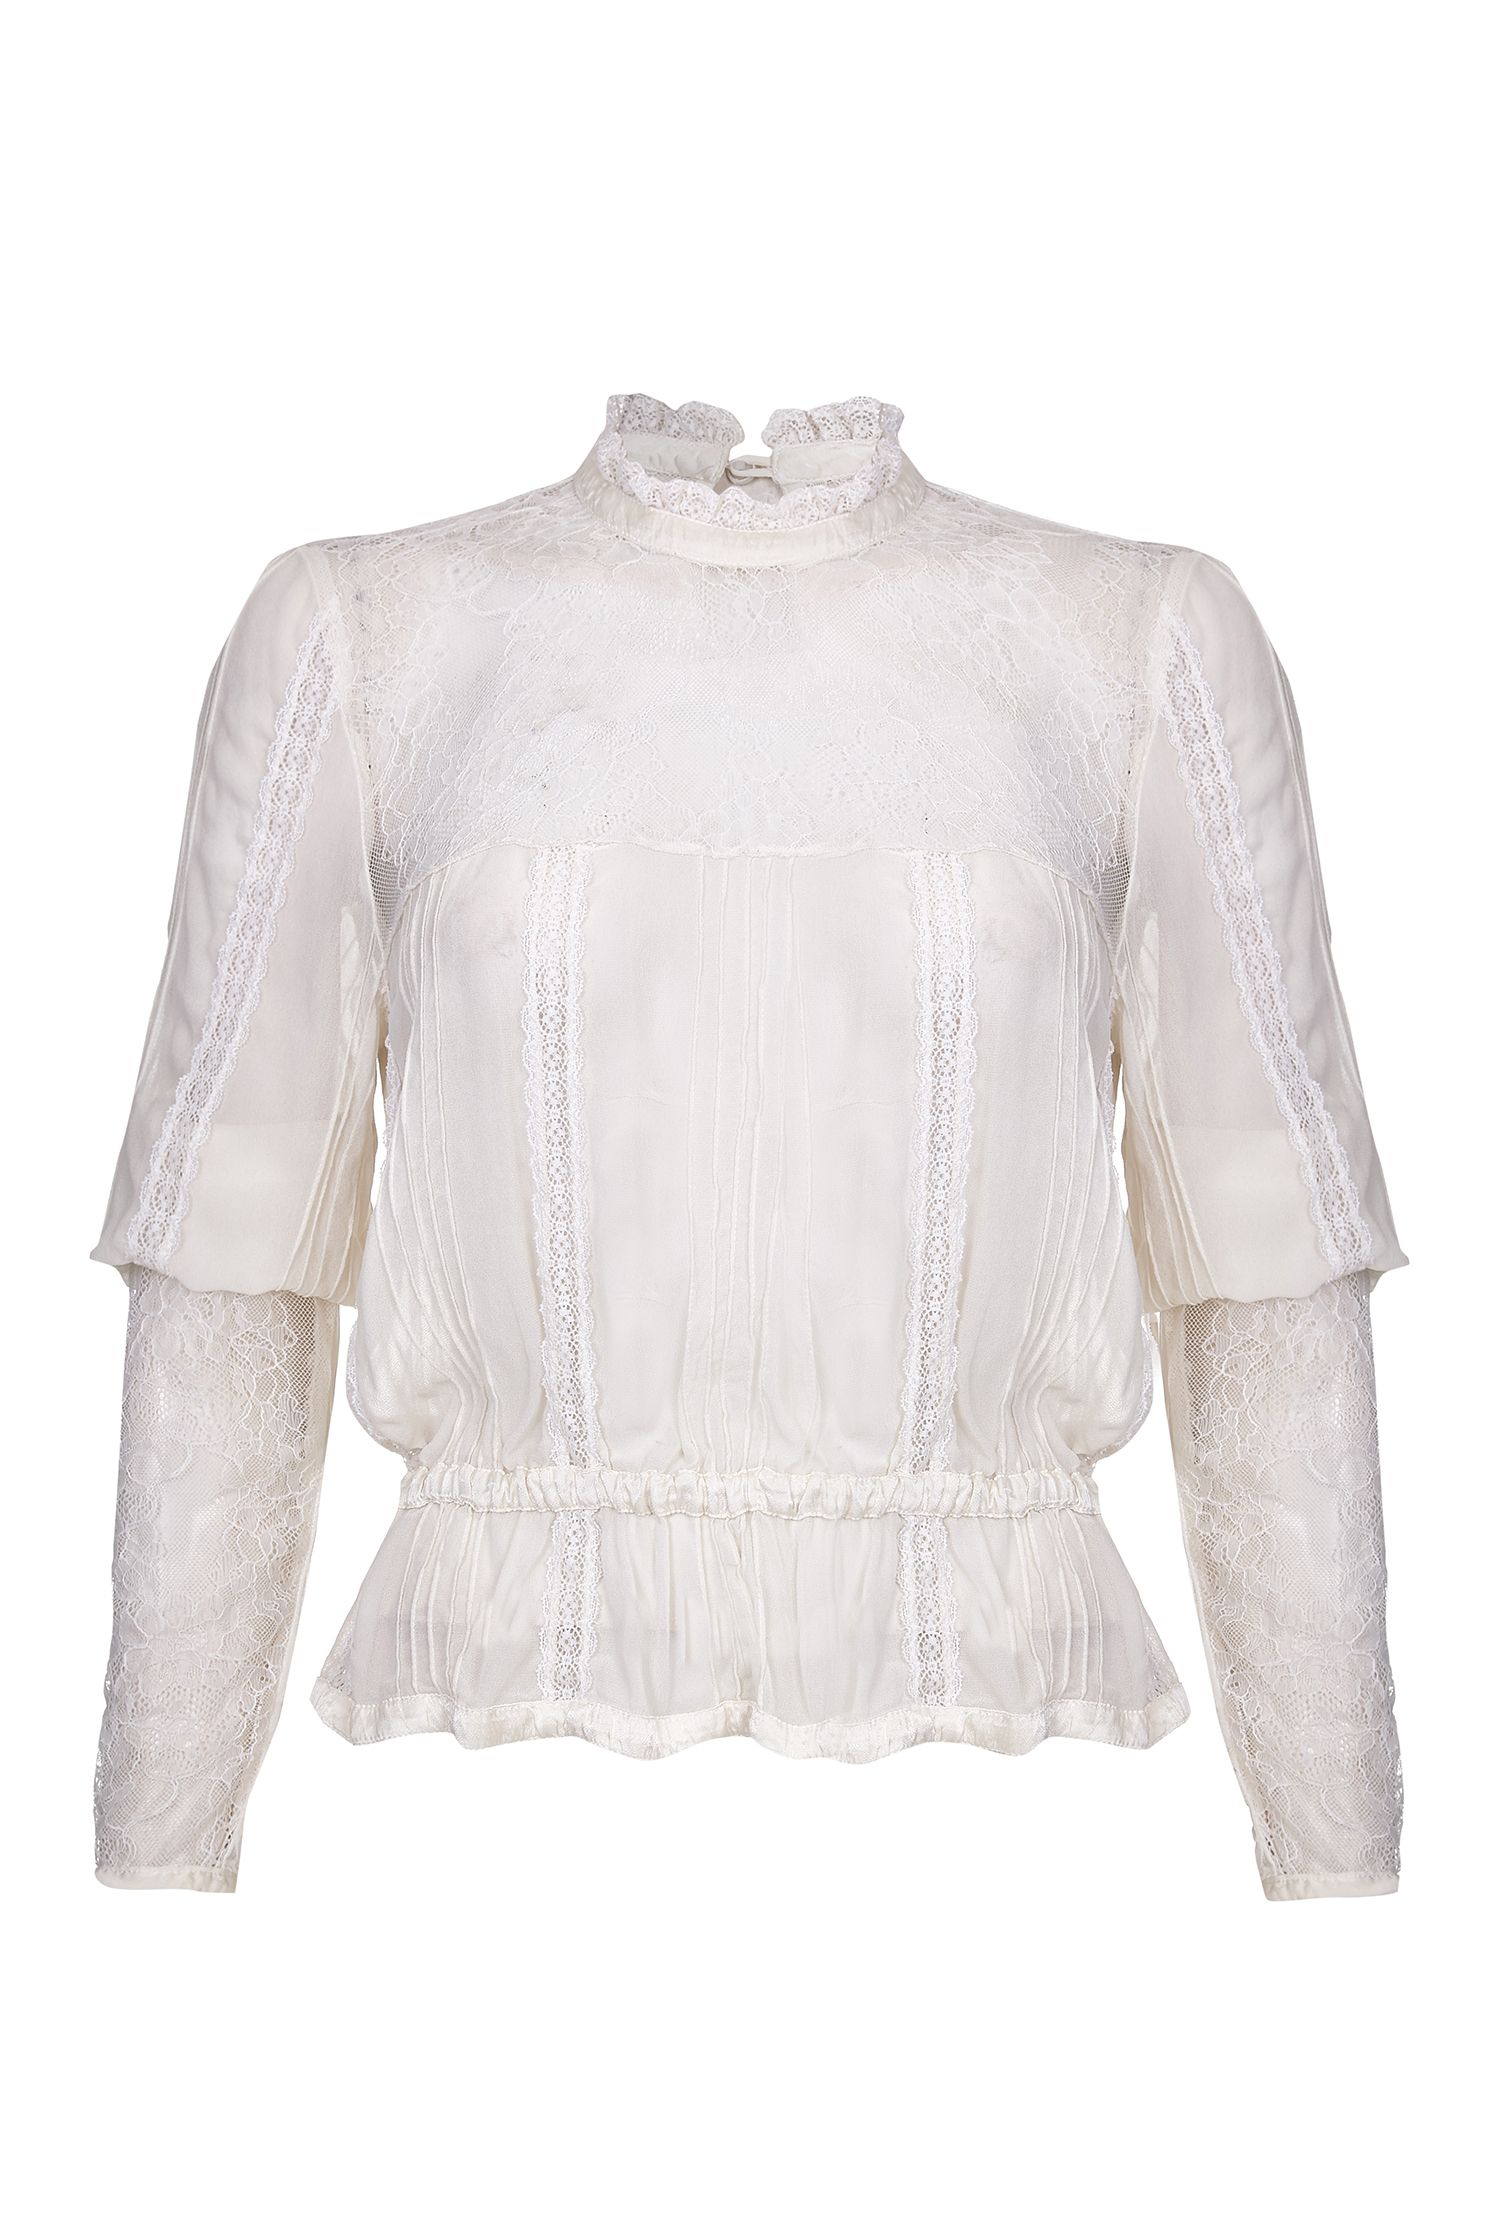 Ghost Rosanne Blouse, Cream